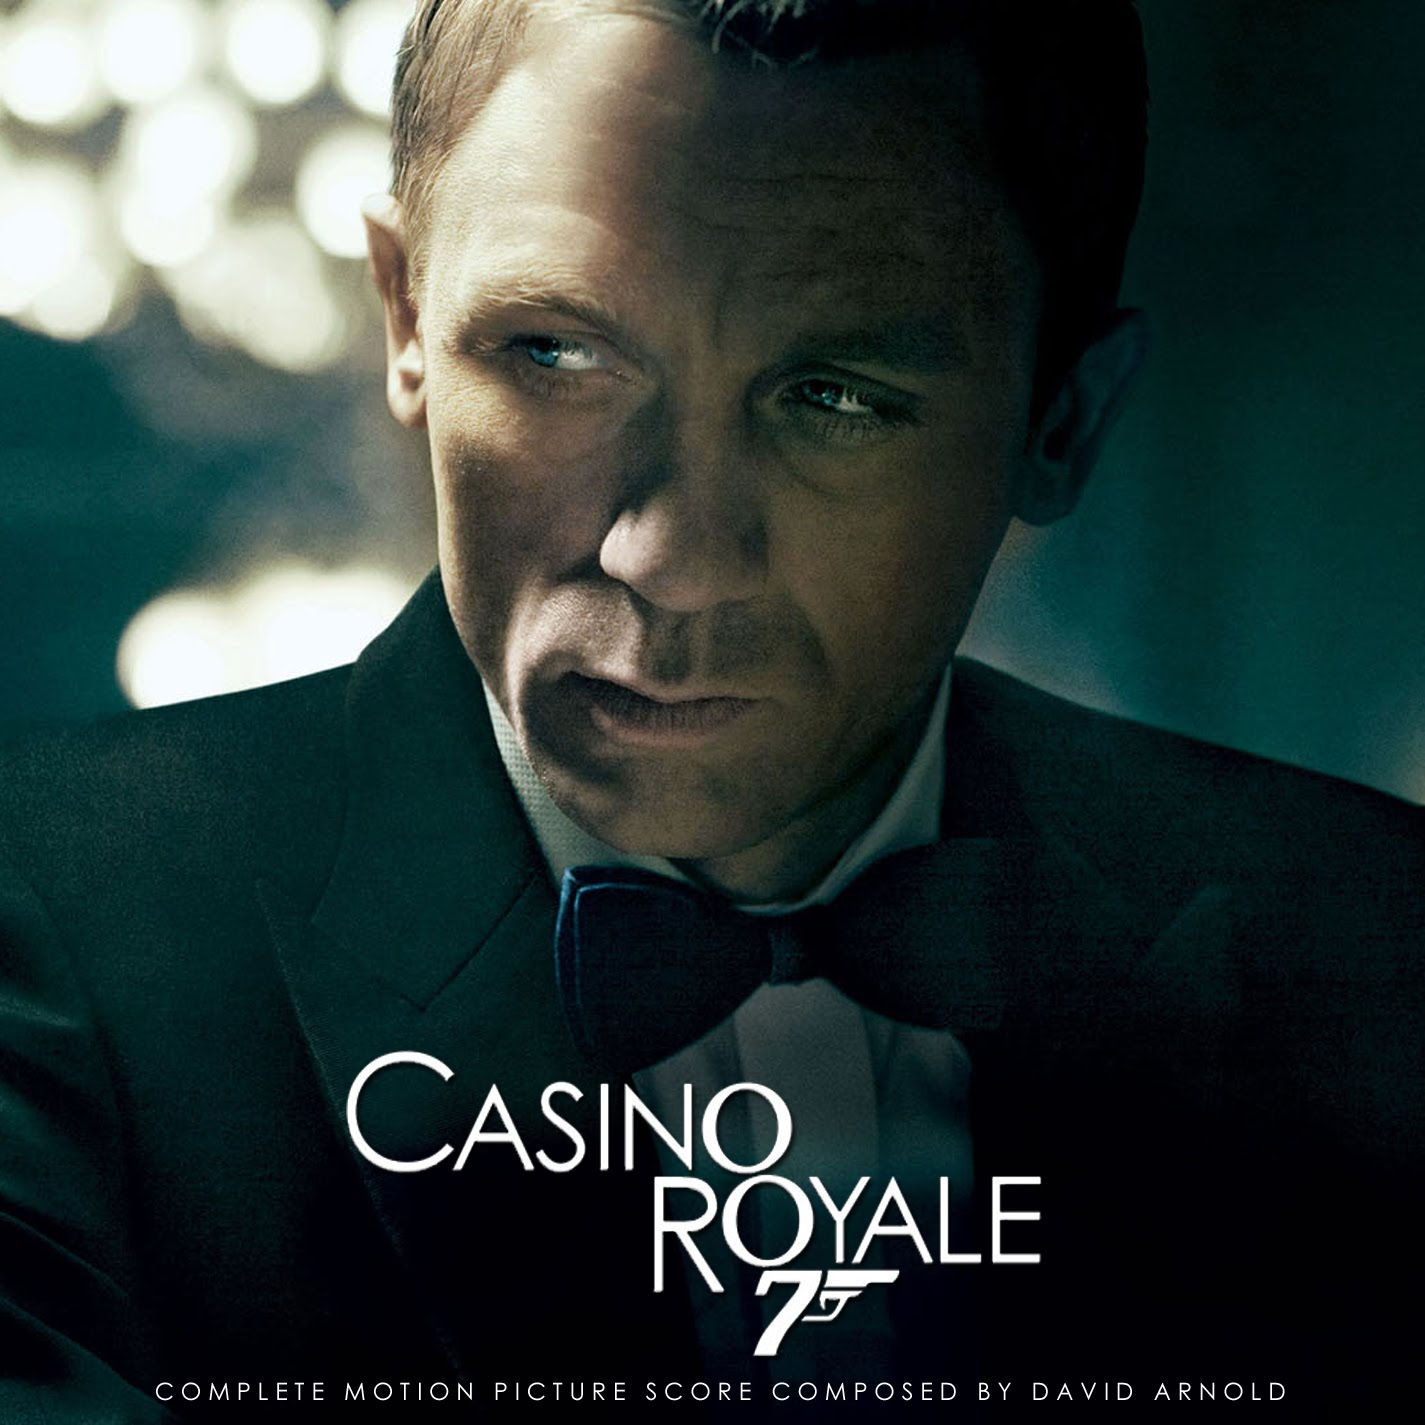 casino royale 2006 full movie online free free sizzling hot